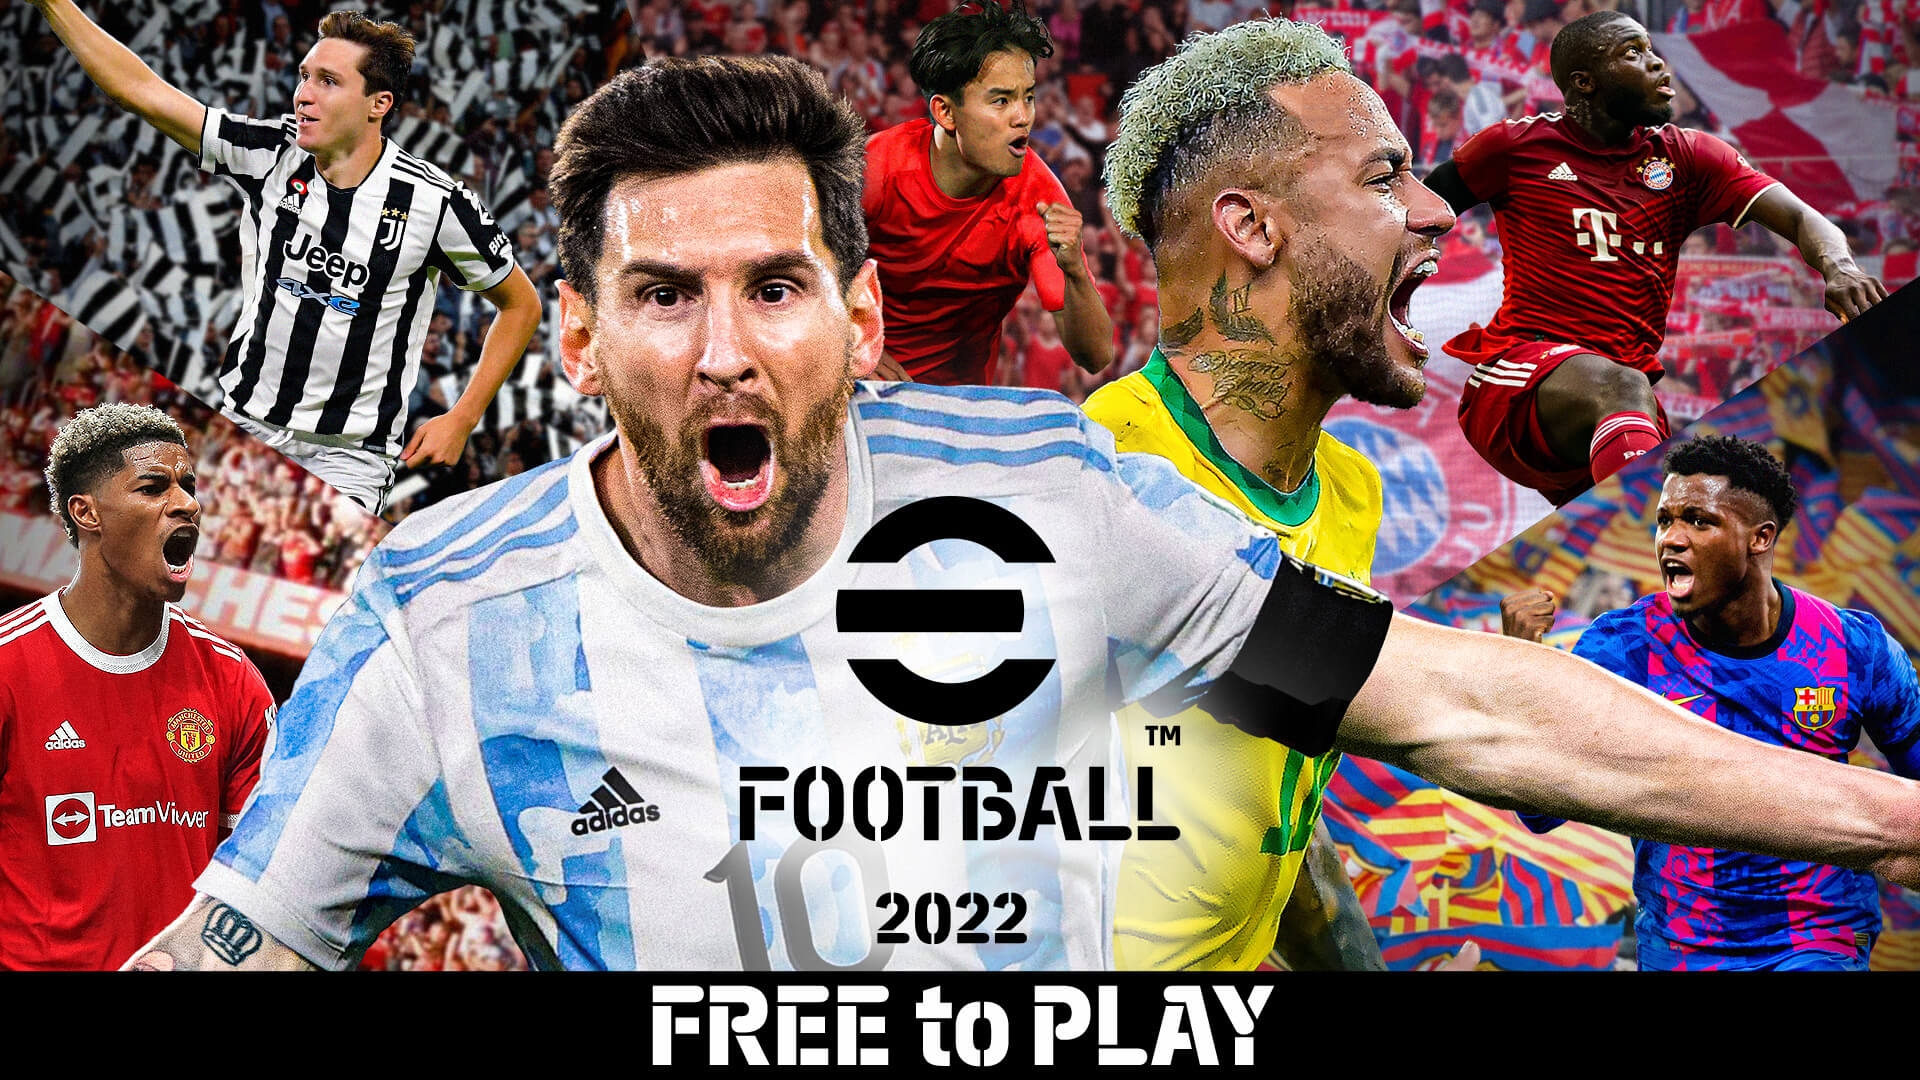 TOP | eFootball Official Site